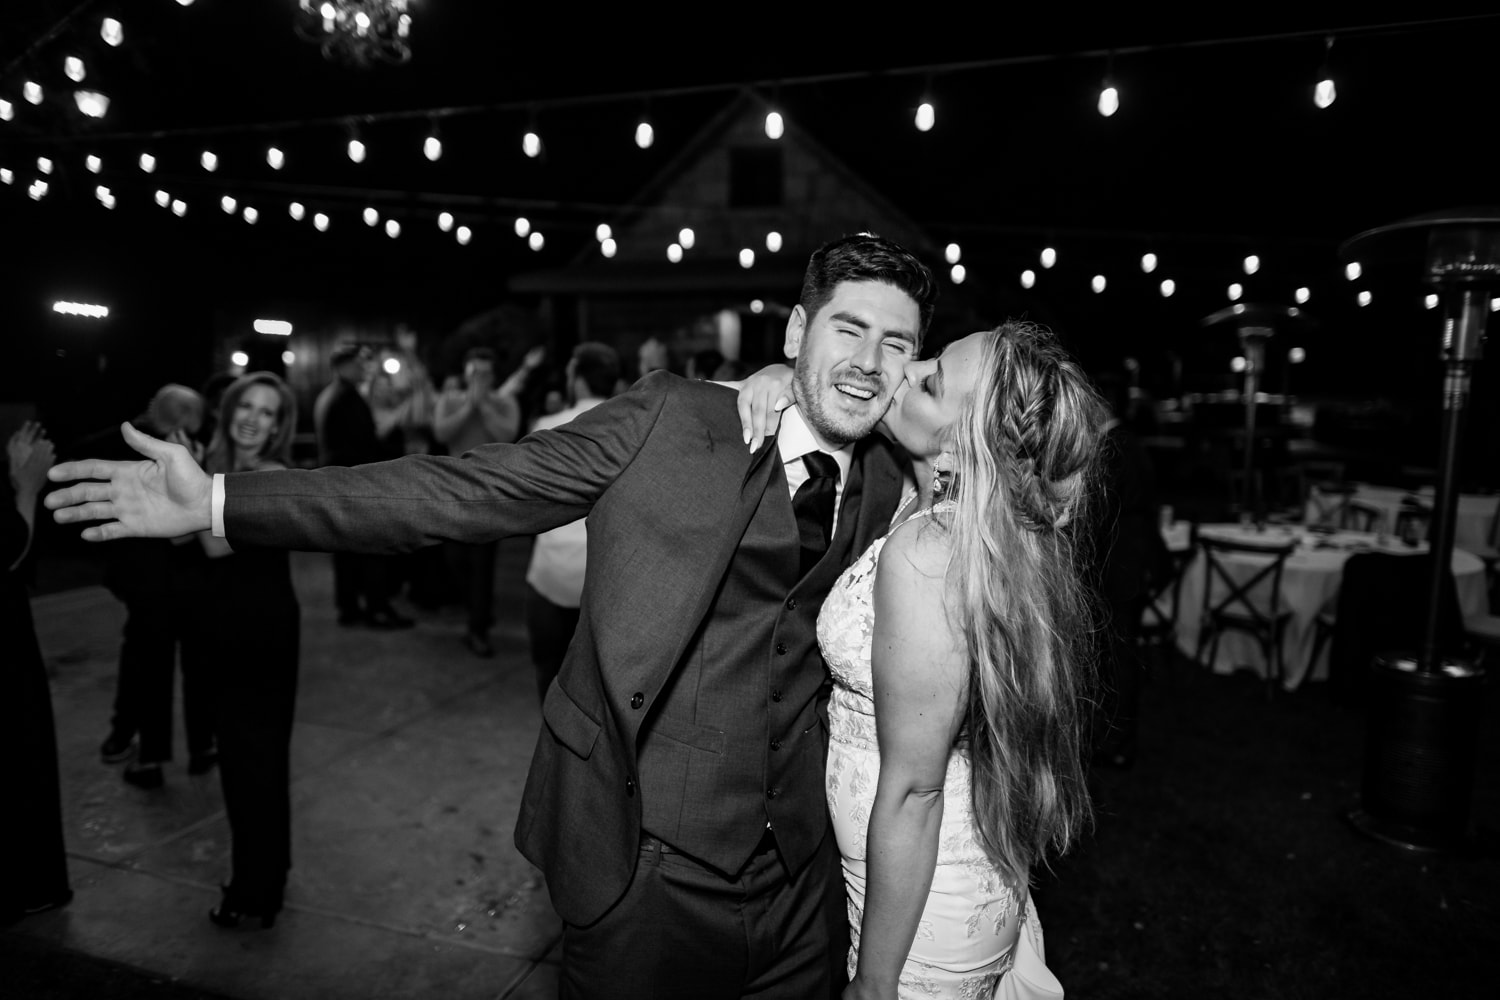 Last dance at The Stone House in Temecula, CA